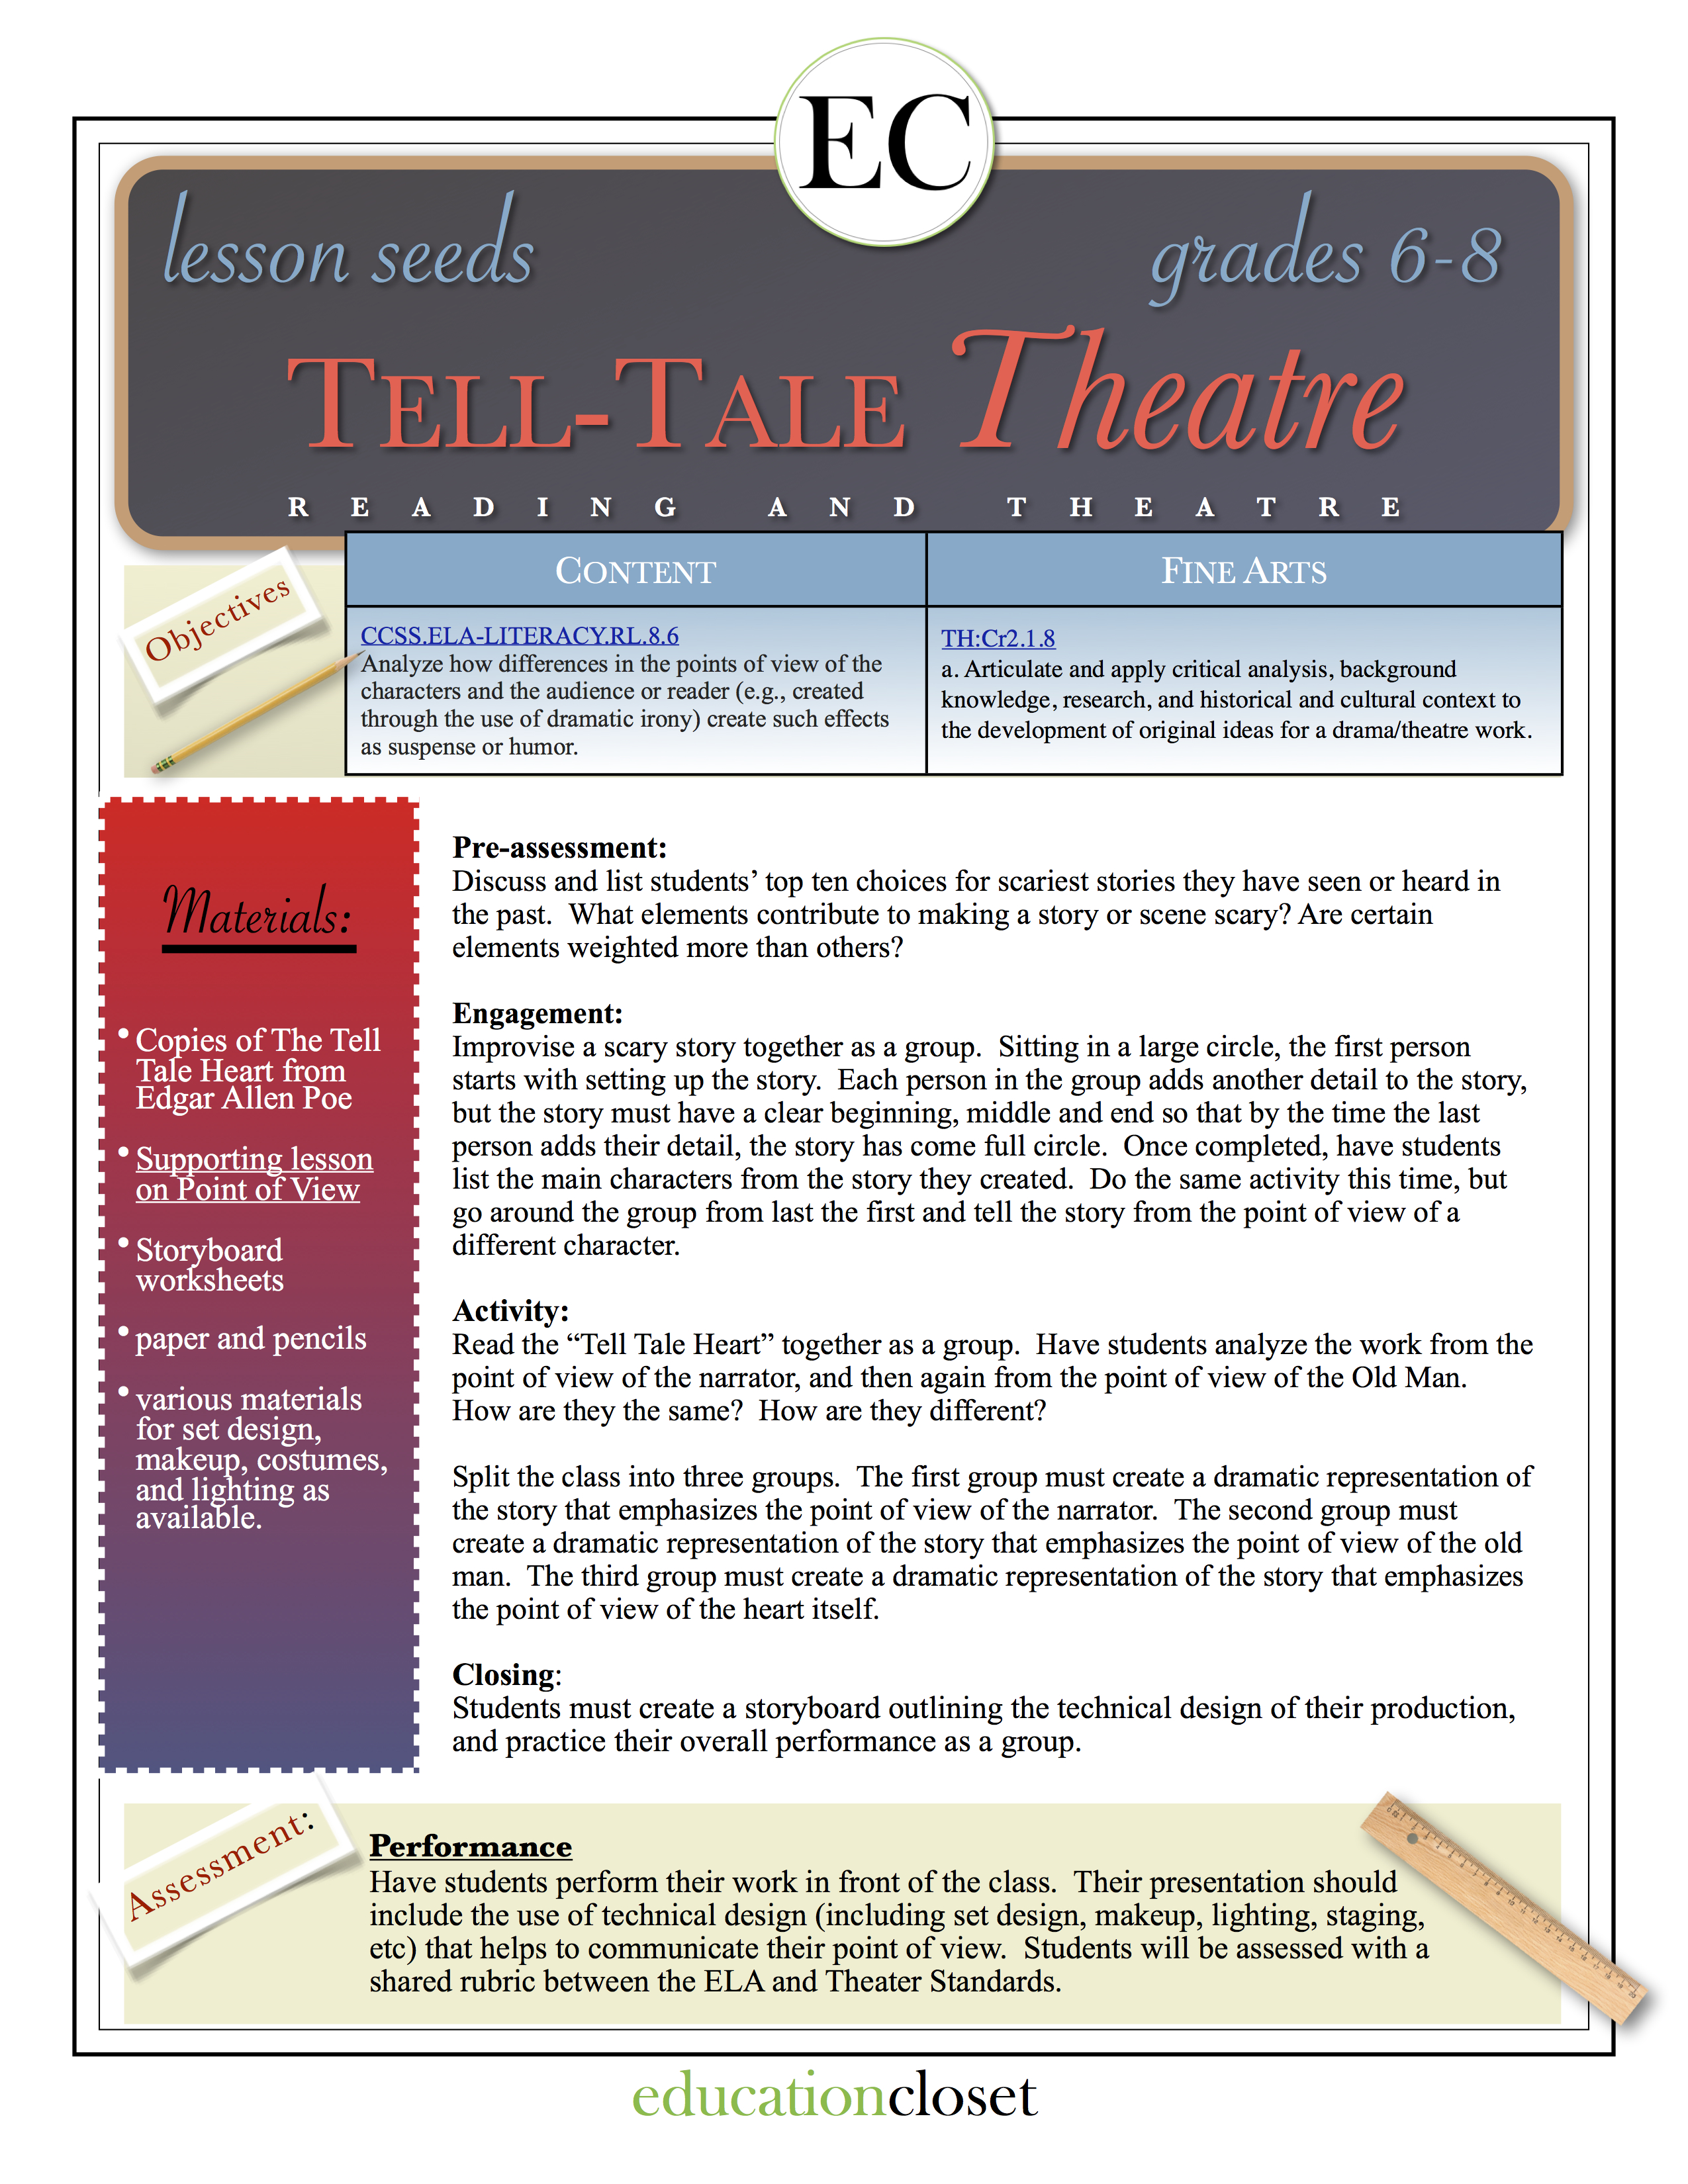 point of view tell-tale heart essay View tale of tell essays heart point john april 2 2012 tell-tale heart : learn vocabulary, terms, and more with flashcards, games, and other study tools essays on the tell tale heart prev essay analysis essay of view and start studying as it is an affordable essays.